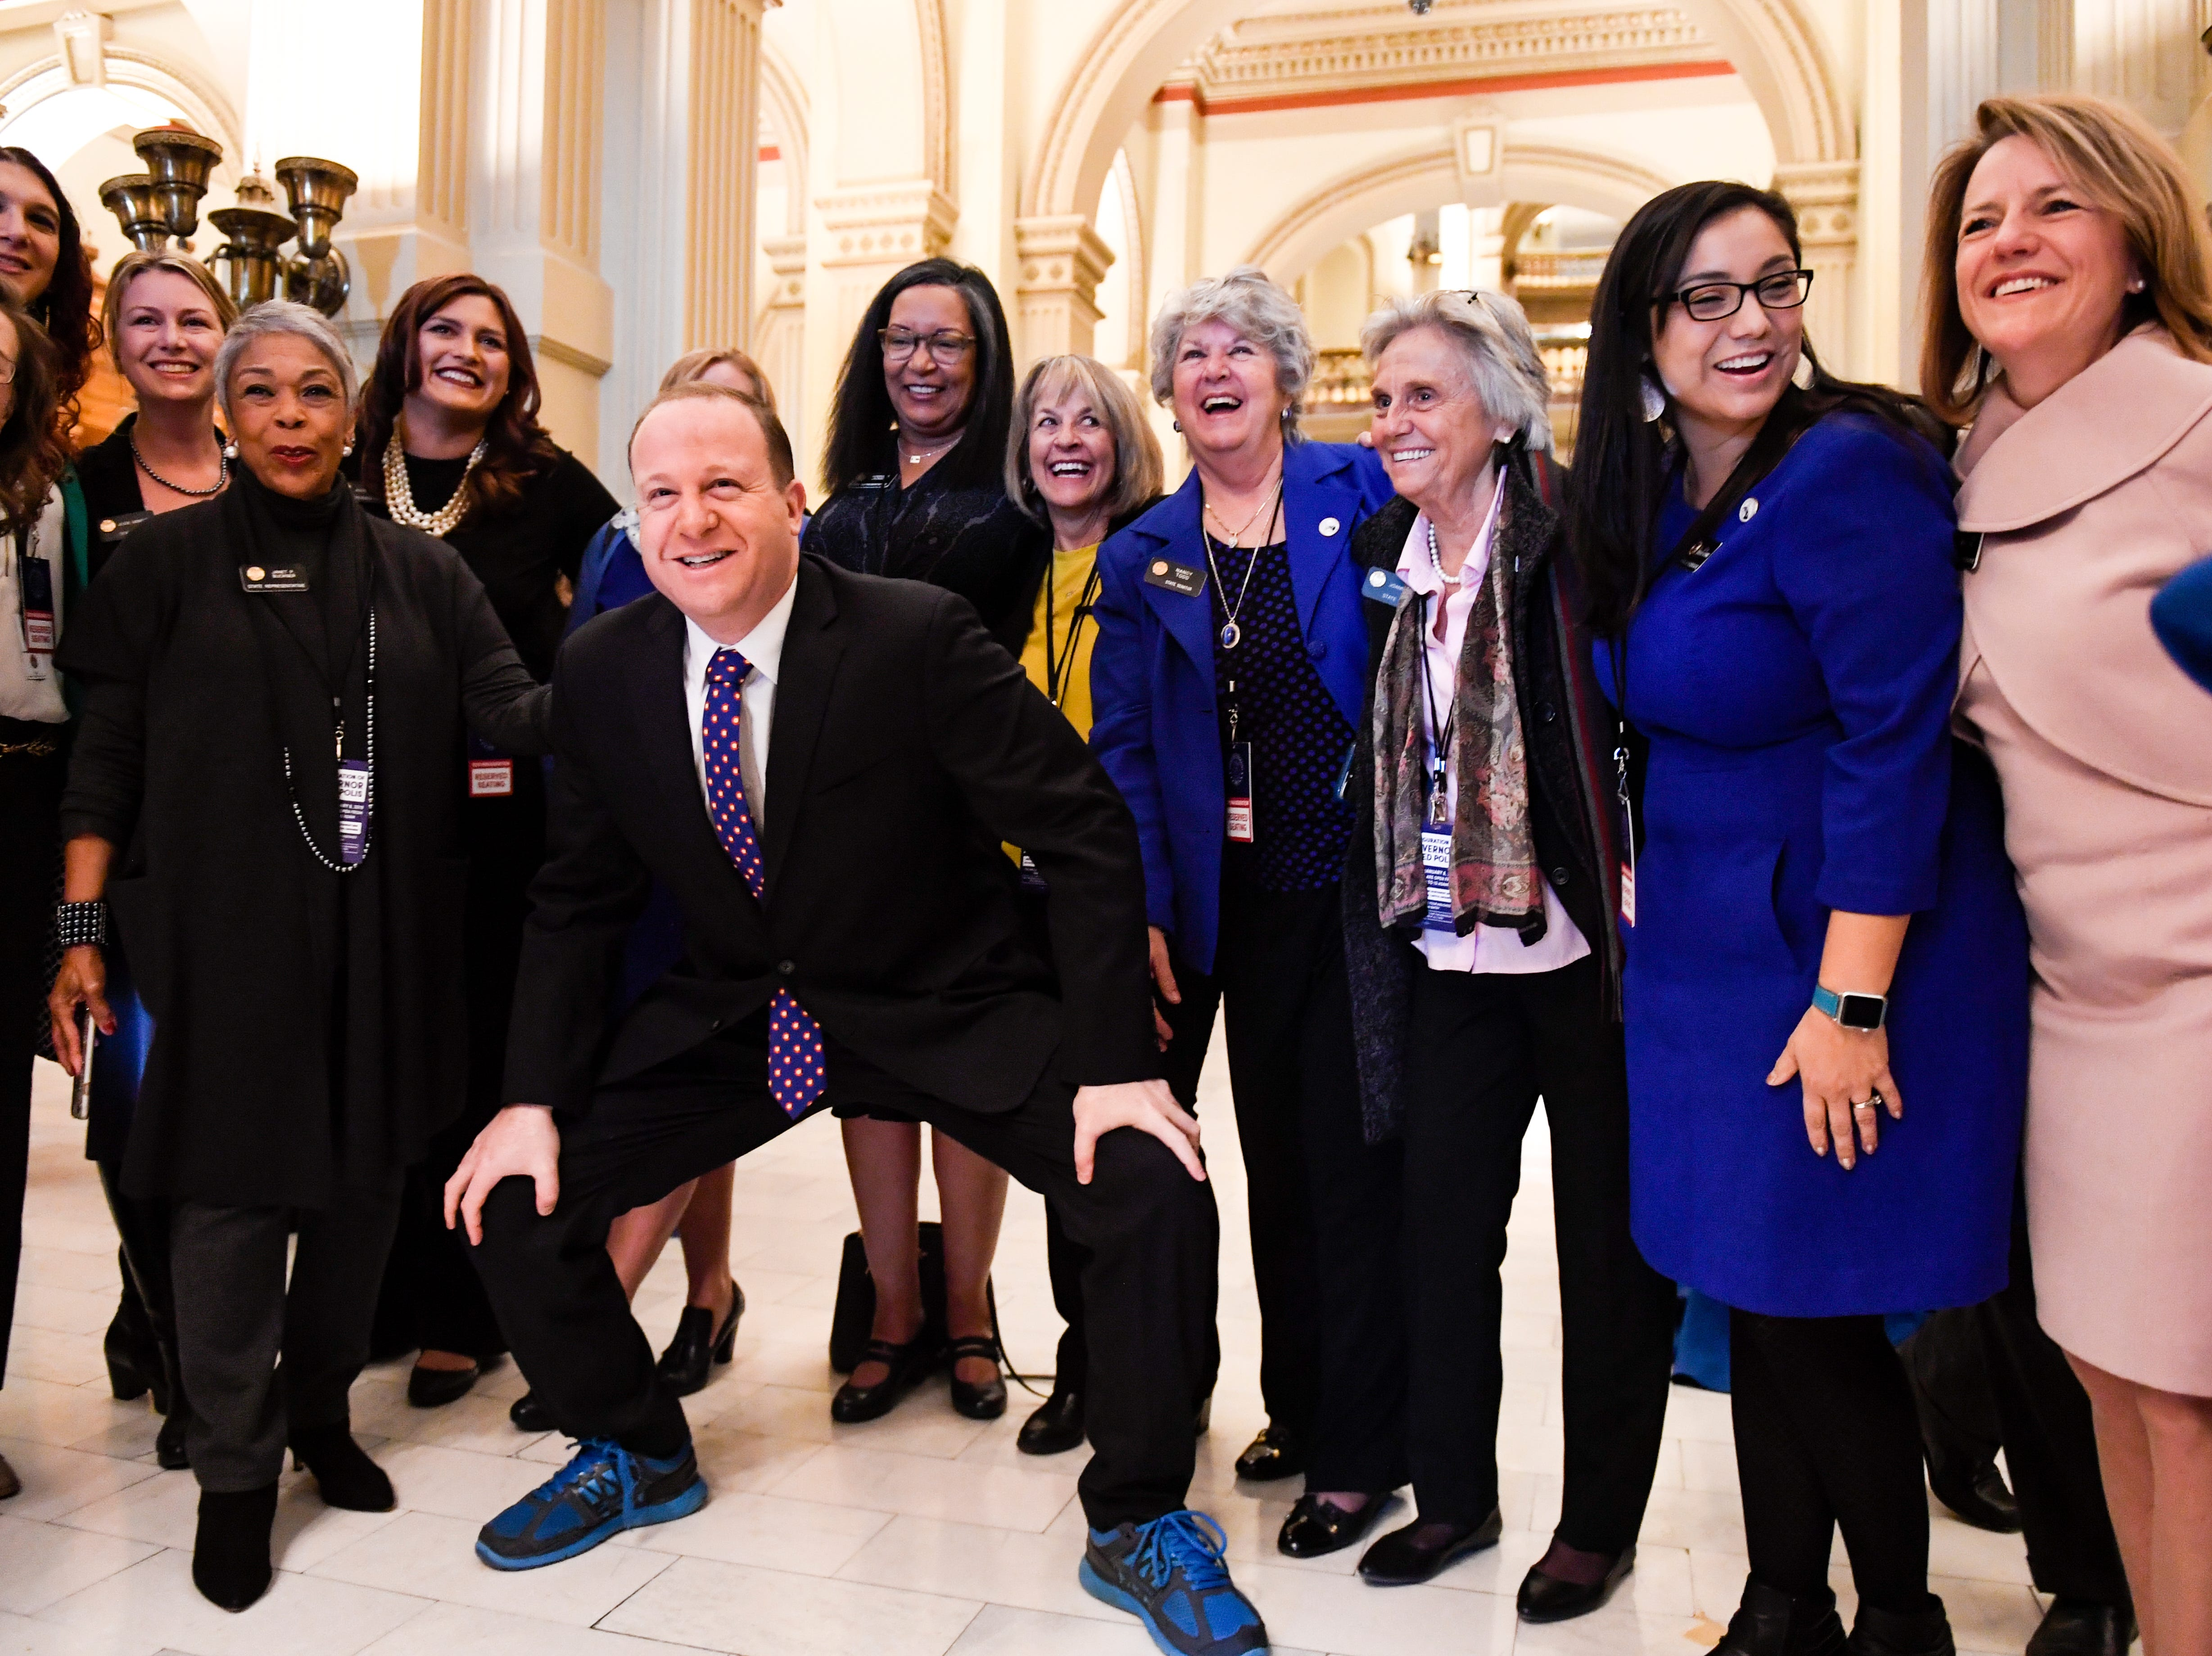 DENVER, CO - JANUARY 8: Colorado Governor elect Jared Polis stands with members of the state house and senate for a photo op before his inauguration at the Colorado State Capitol on Tuesday, January 8, 2019. (Photo by AAron Ontiveroz/The Denver Post/Pool)